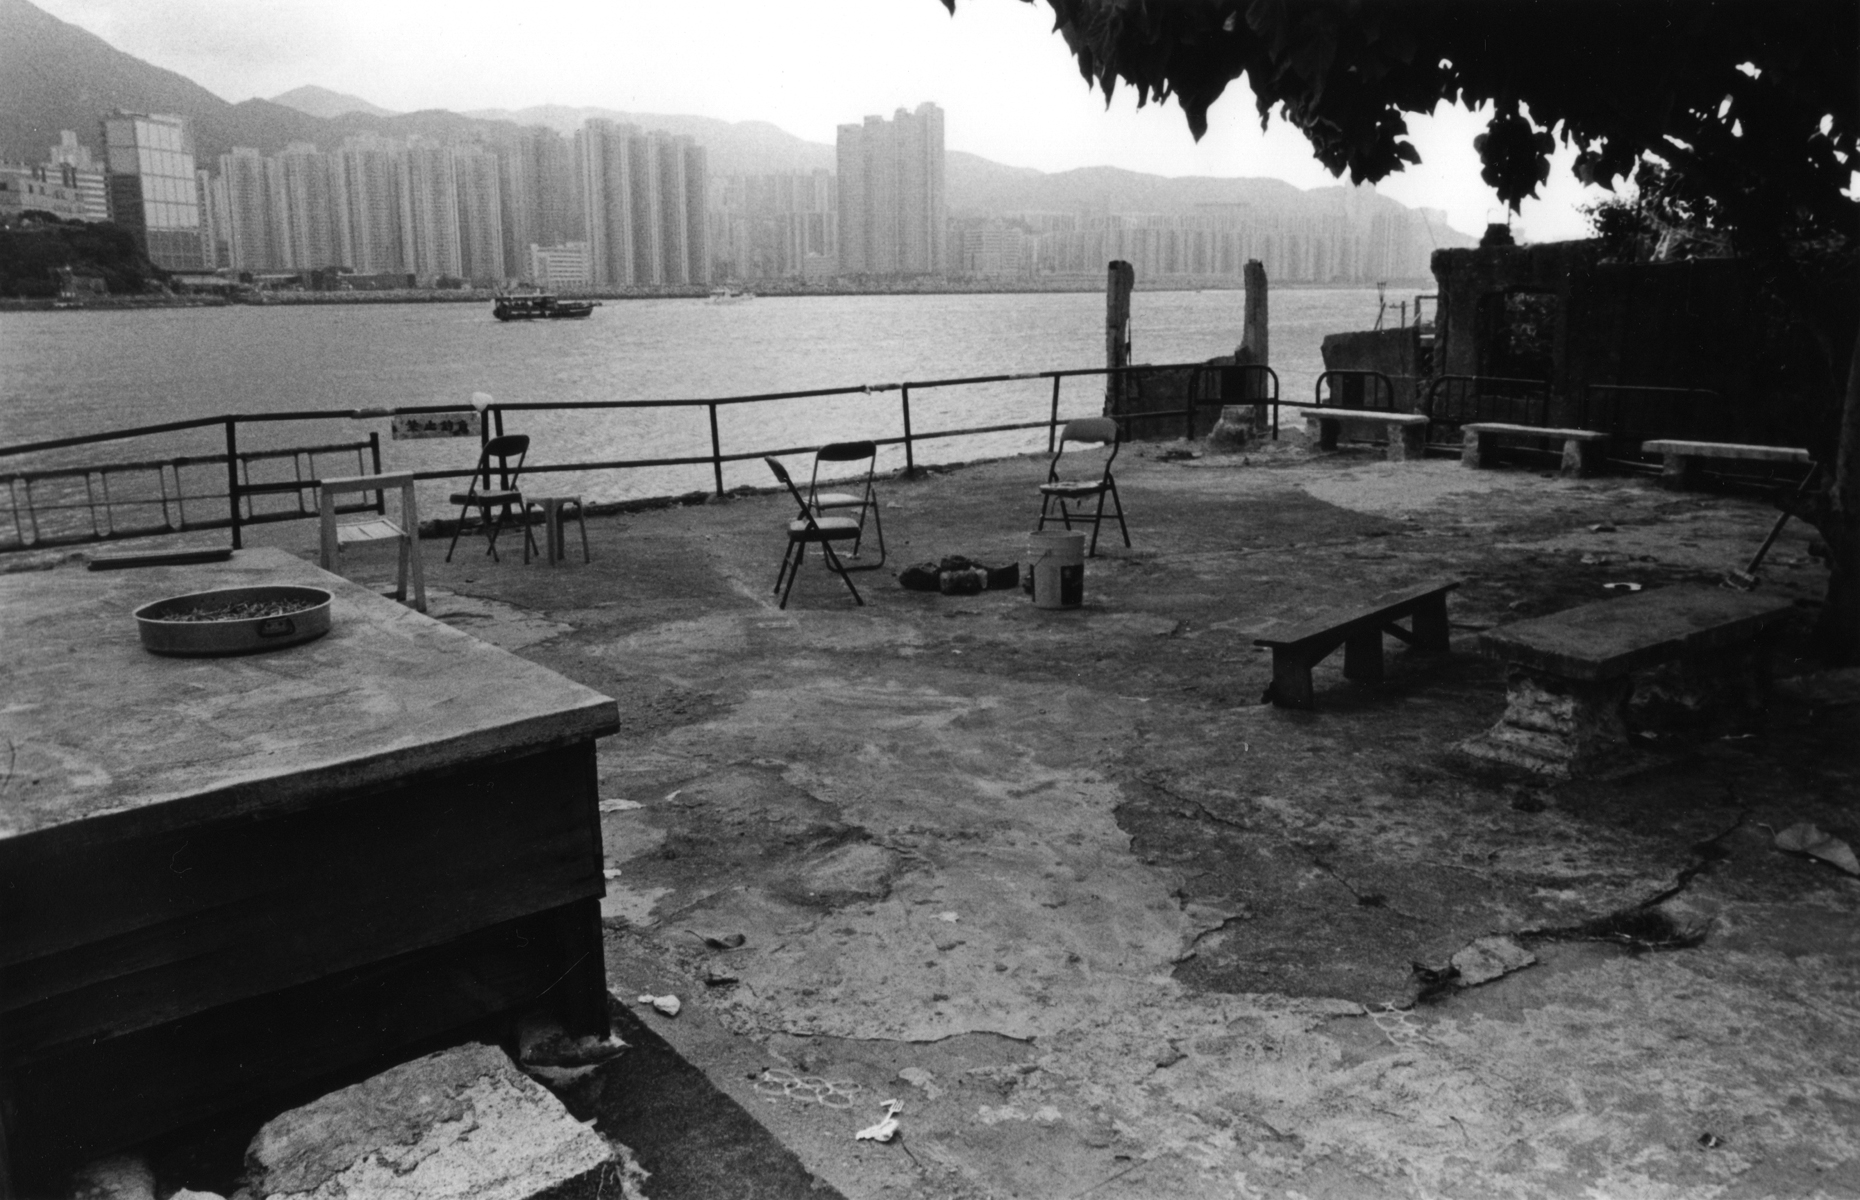 A neighborhood park in the Lei Yue Mun District, known for its seafood markets and fishing villages, overlooks Victoia Bay and the Financial Center of Hong Kong Island. Kowloon Peninsula, Hong Kong